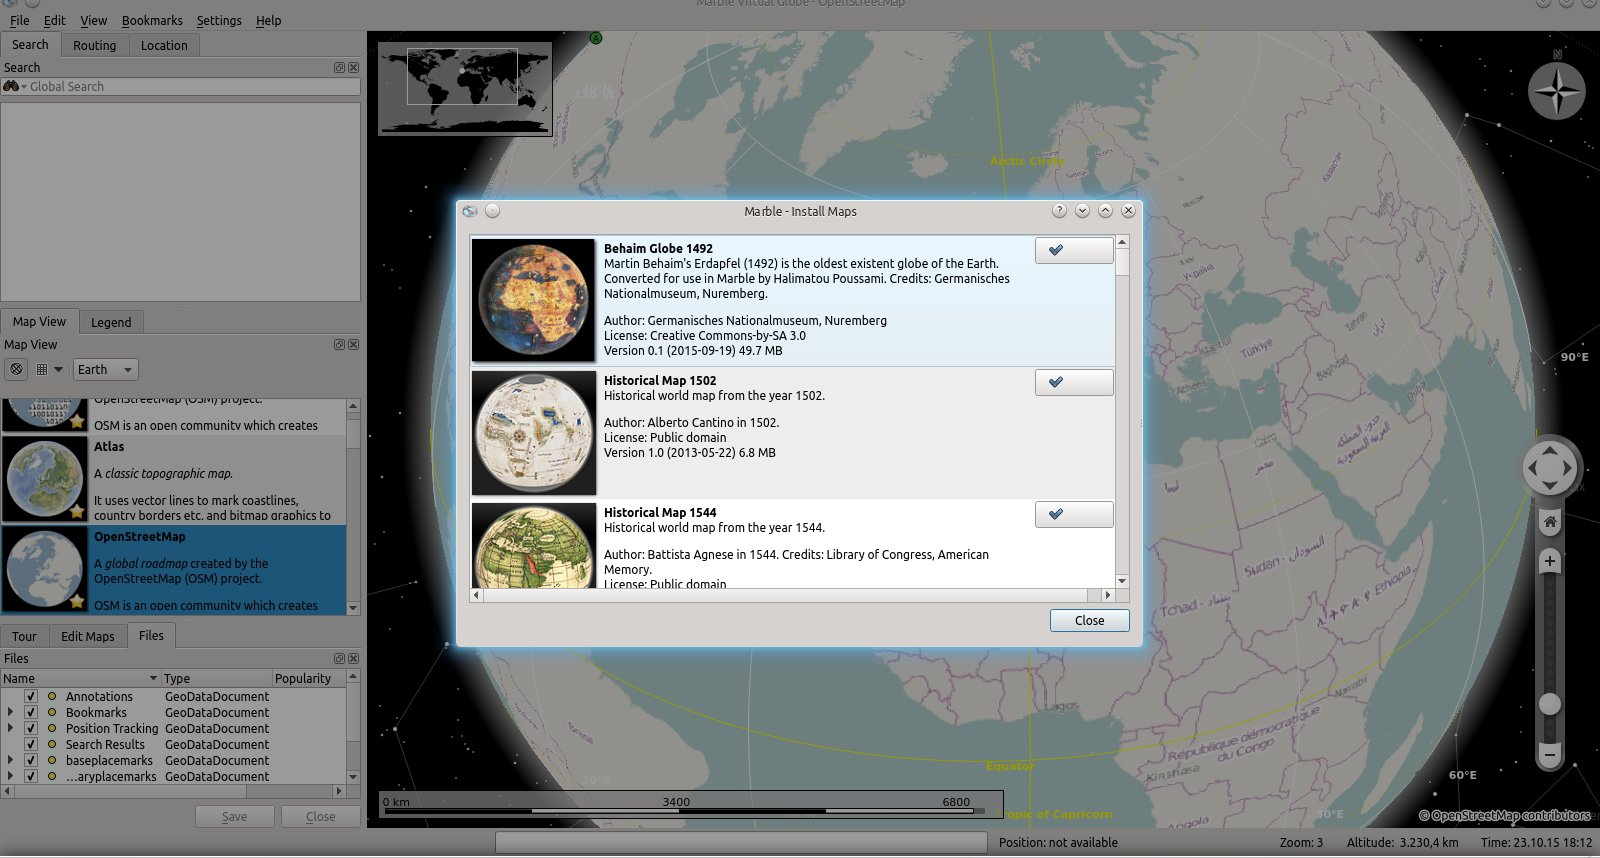 Google themes marble - Starting With The Next Marble Release Scheduled For December 2015 The Behaim Globe Map Theme Will Become A Regular Part Of The Map Themes That Are Shipped